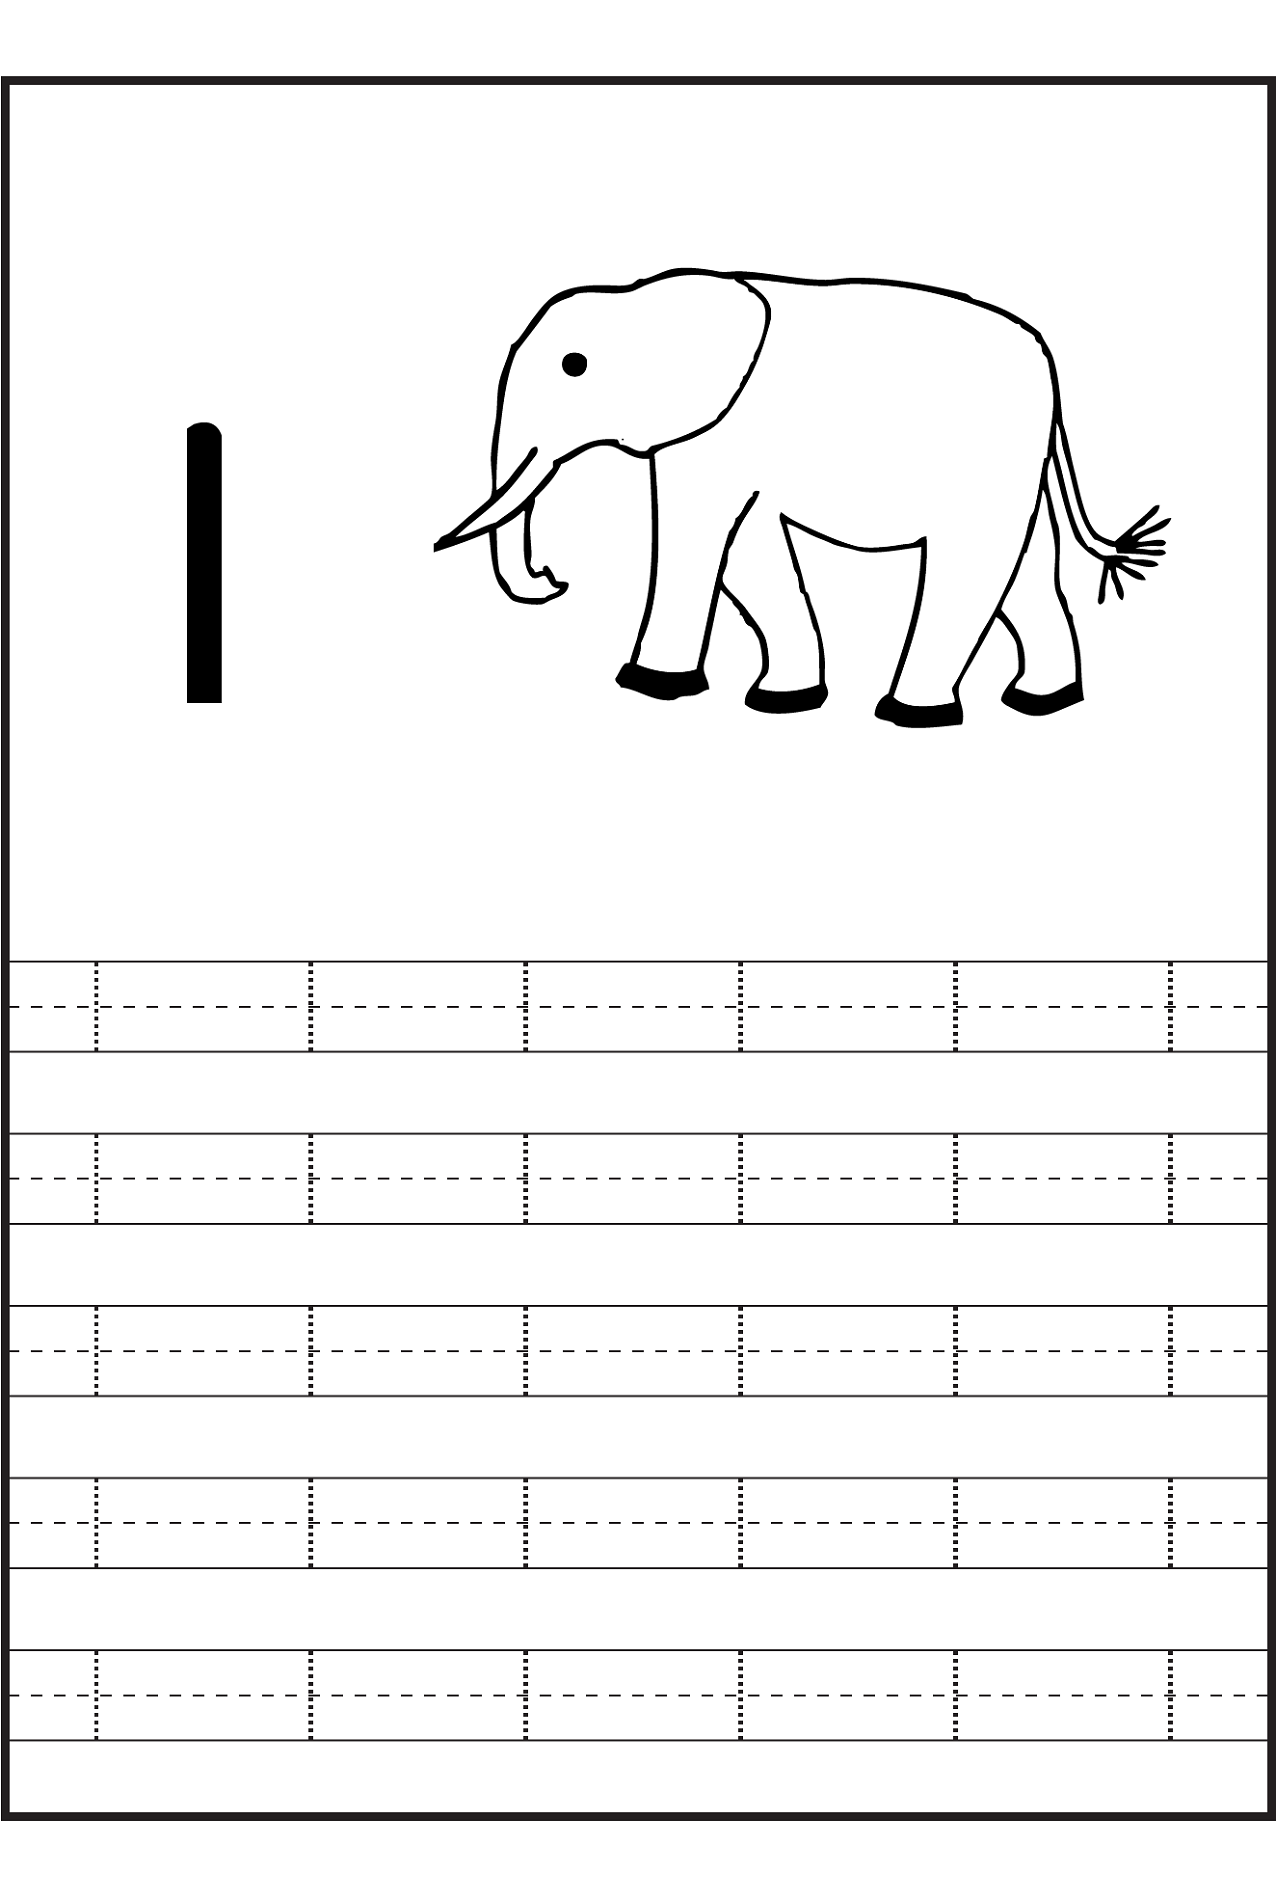 Worksheets Number Trace Worksheet number trace worksheets for kids tracing fun activity fun